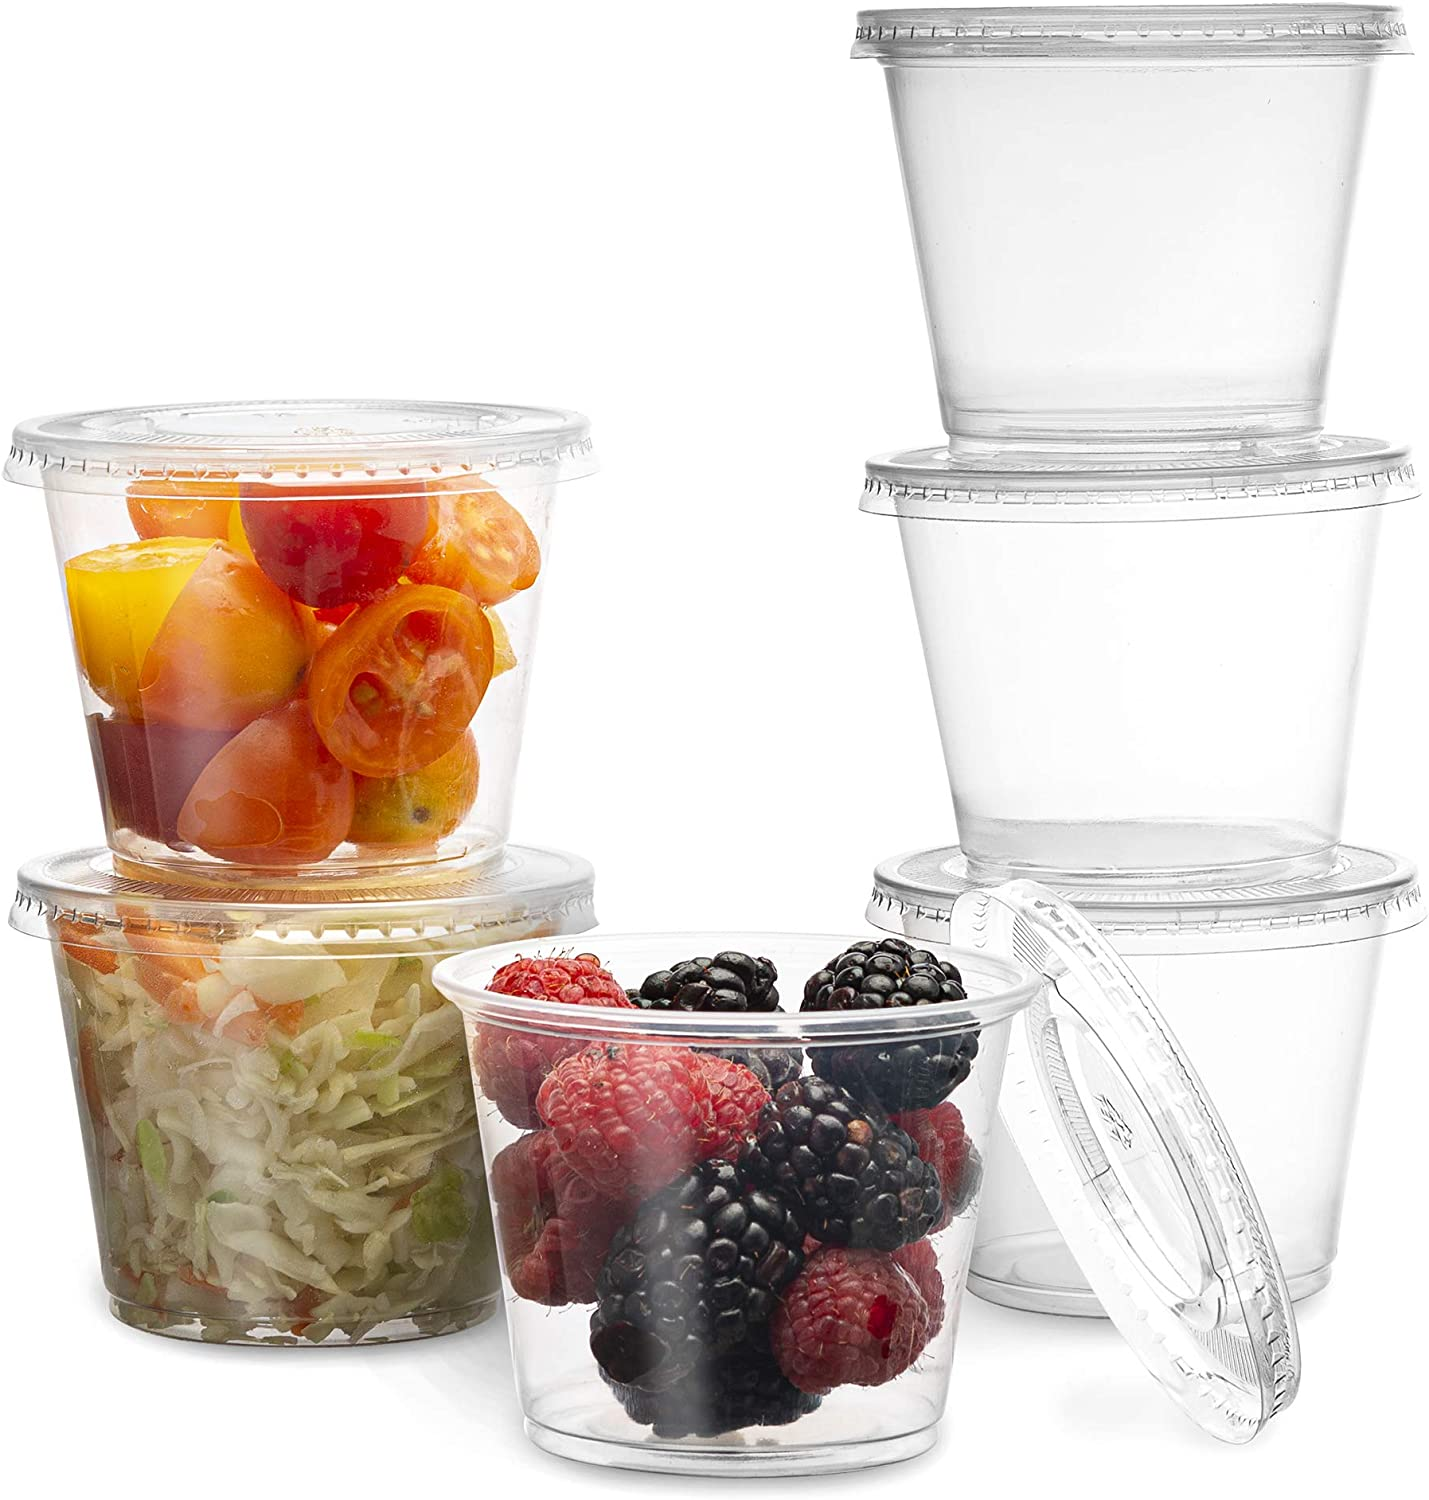 PlastiMade Clear Disposable Plastic Portion Cups With Lids (100 Sets - 1 Oz) - Disposable Condiment Cups, Sauce/Dip/Dressing Cups, Souffle Cups & Jello Shot Cups With Lids | Great Sampling Container